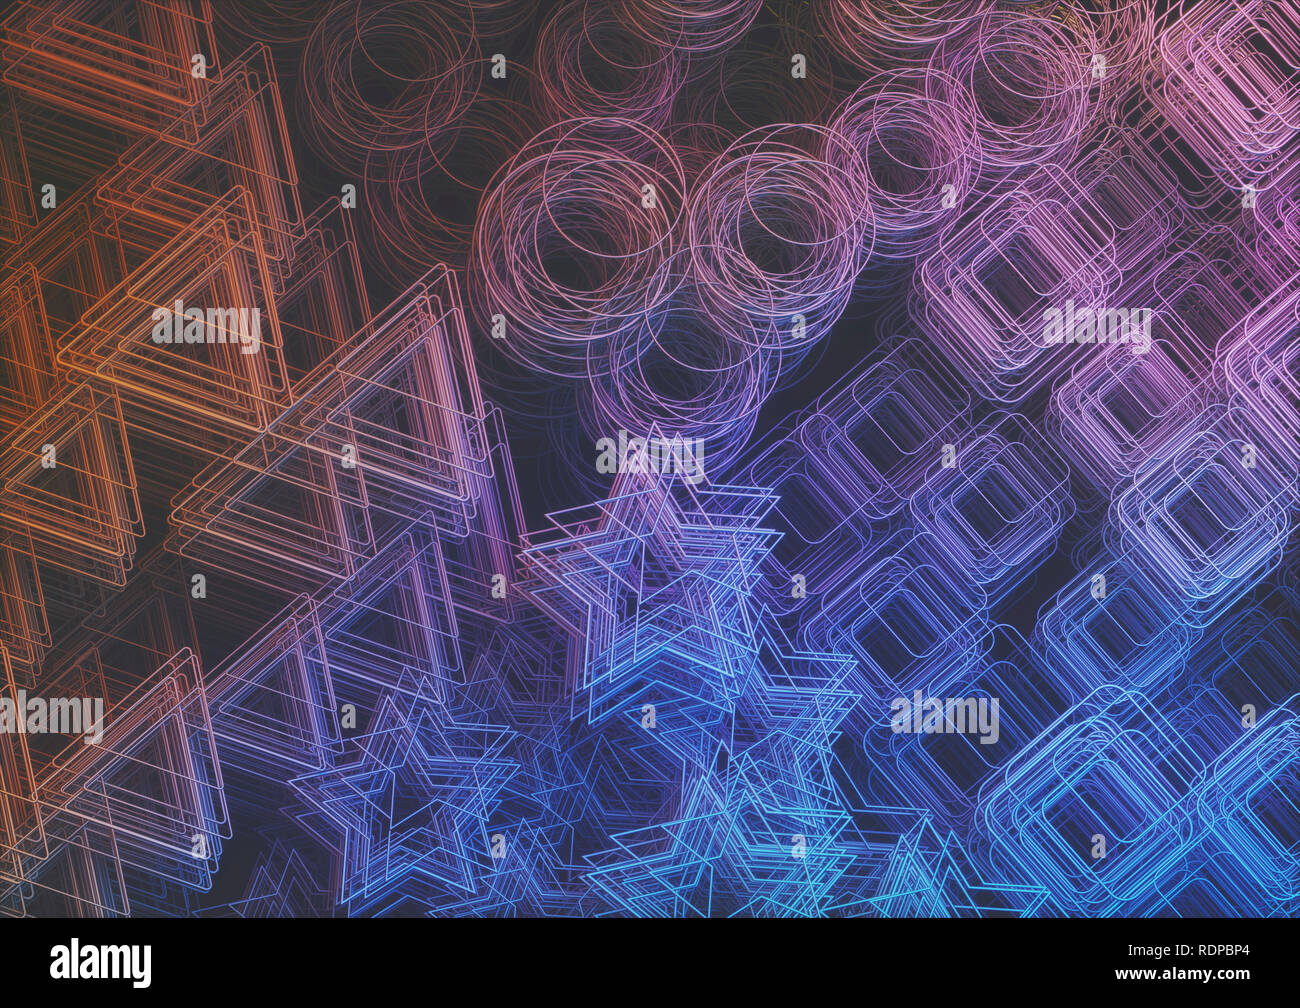 Abstract shapes, illustration - Stock Image